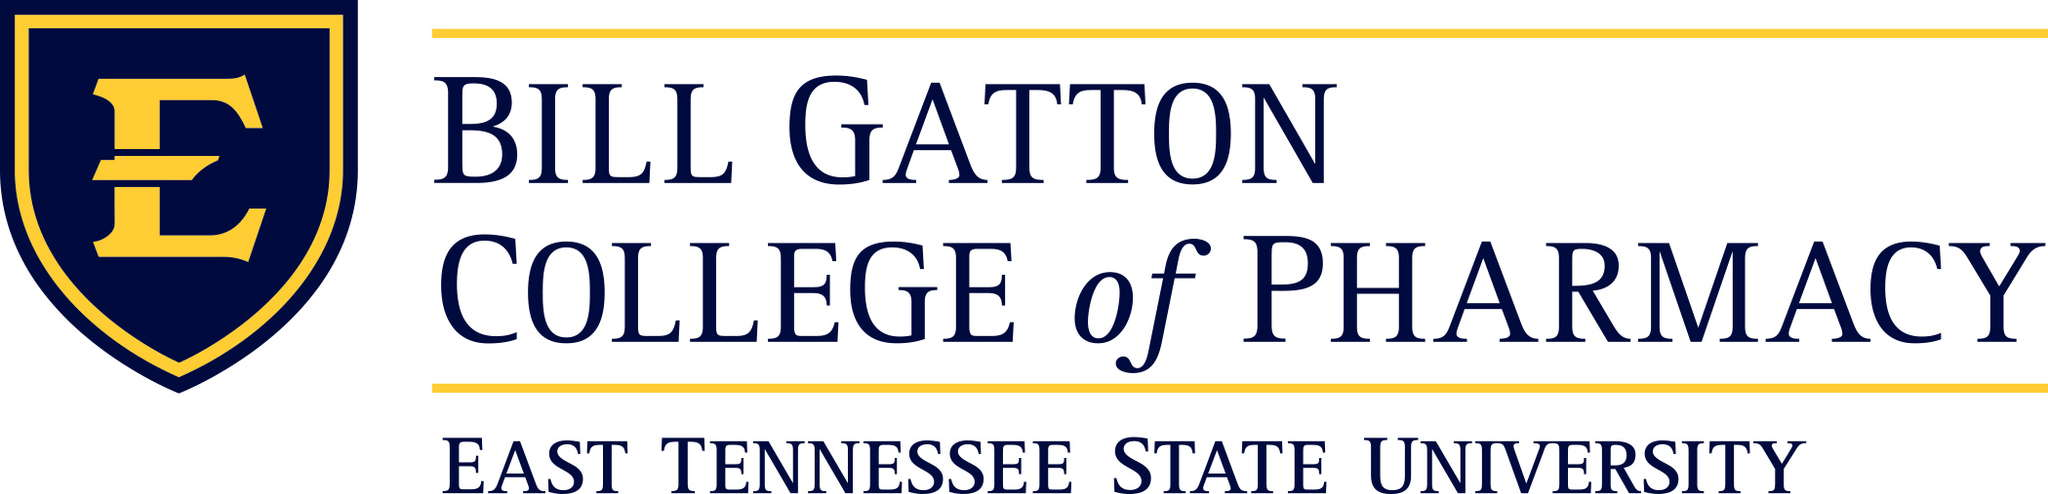 East Tennessee State University - Bill Gatton College of Pharmacy VCE